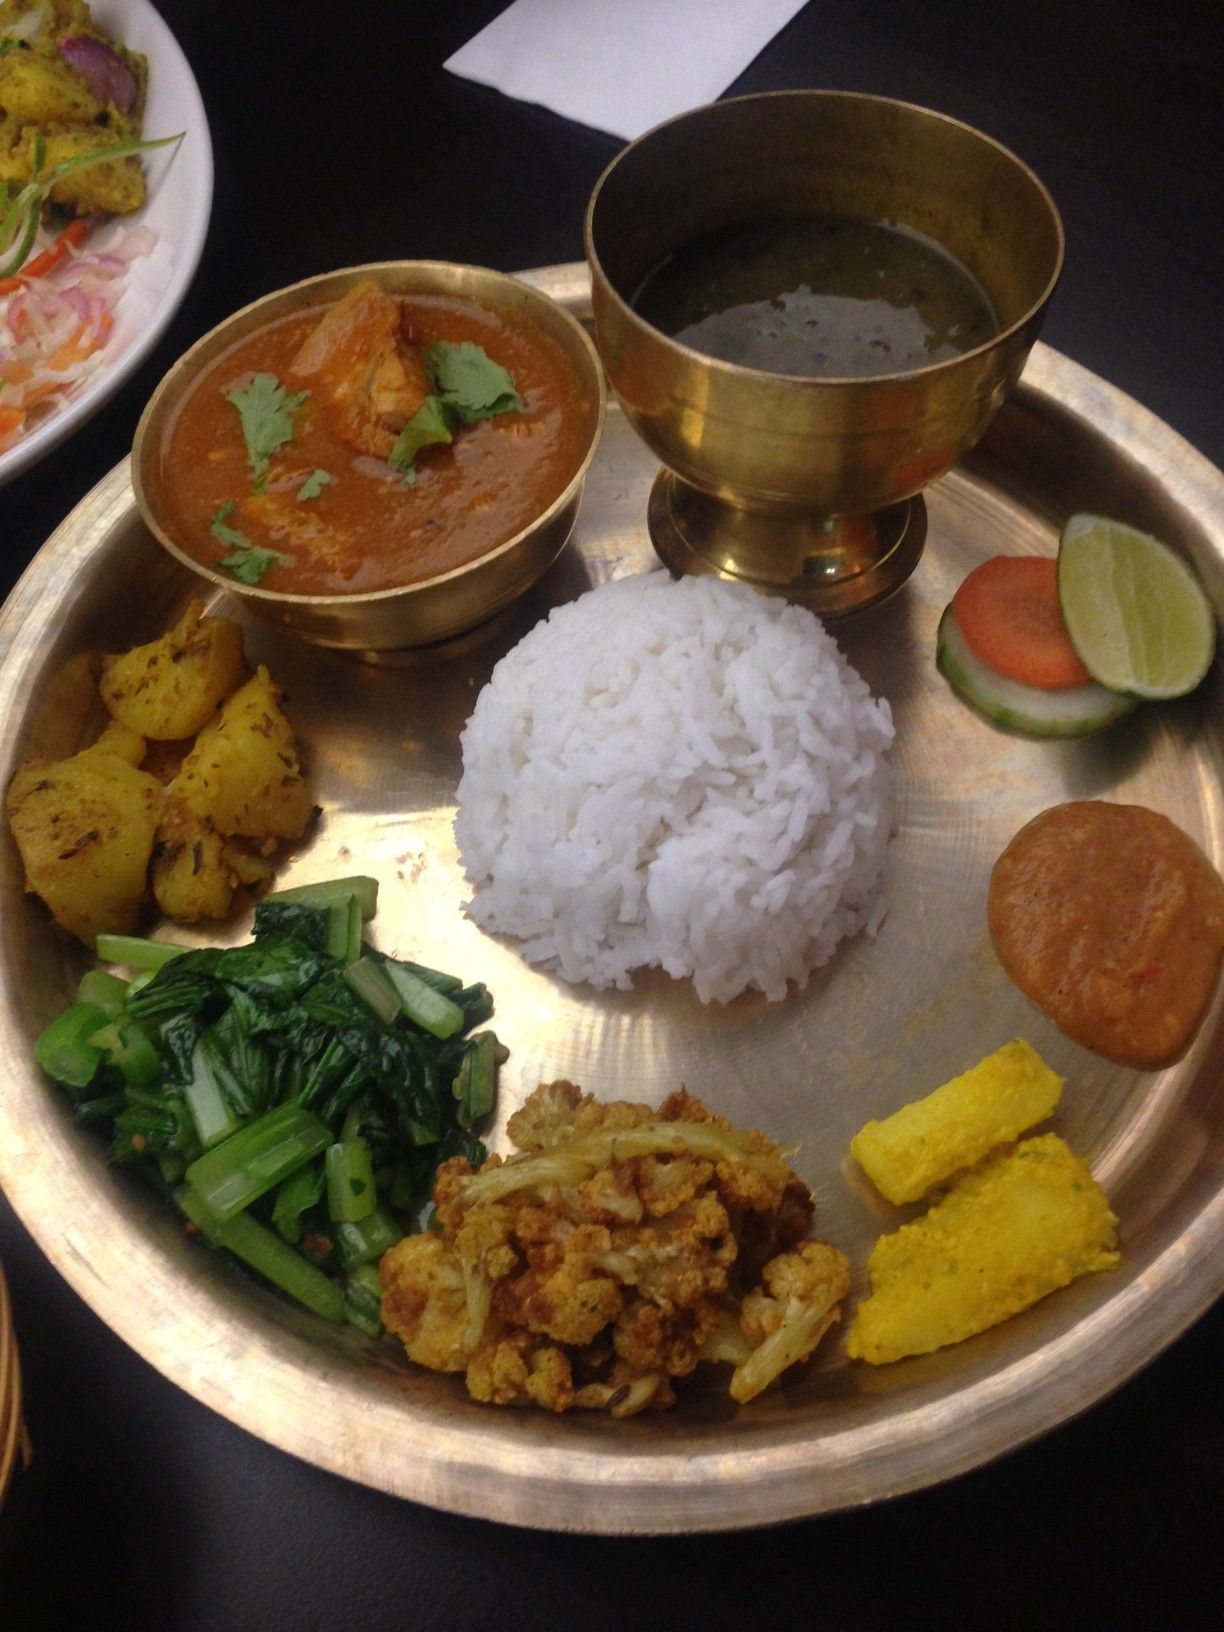 One of the best restaurant I had visited in 2014 was Nepal